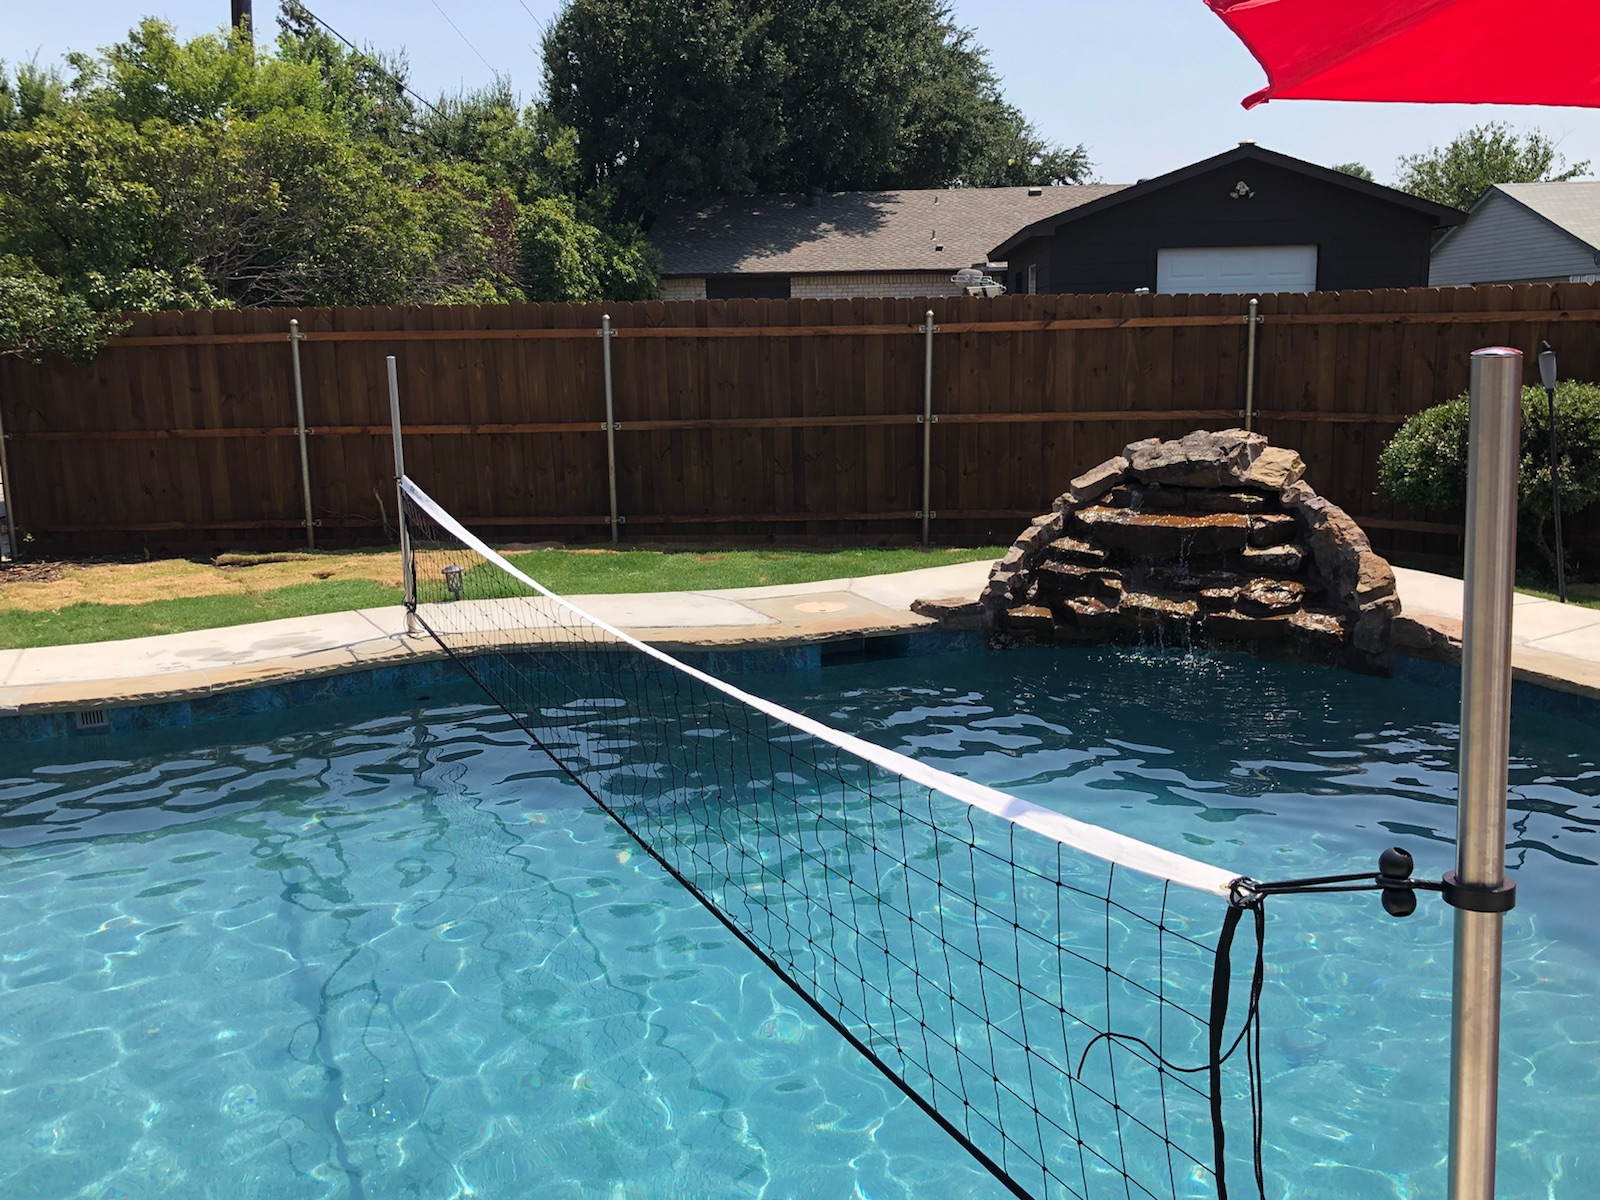 Commercial Grade Pool Volleyball Sets And Volleyball Nets Available In Different Sizes To Fit Your Pool Mounts Cleanly To Your Pool Deck